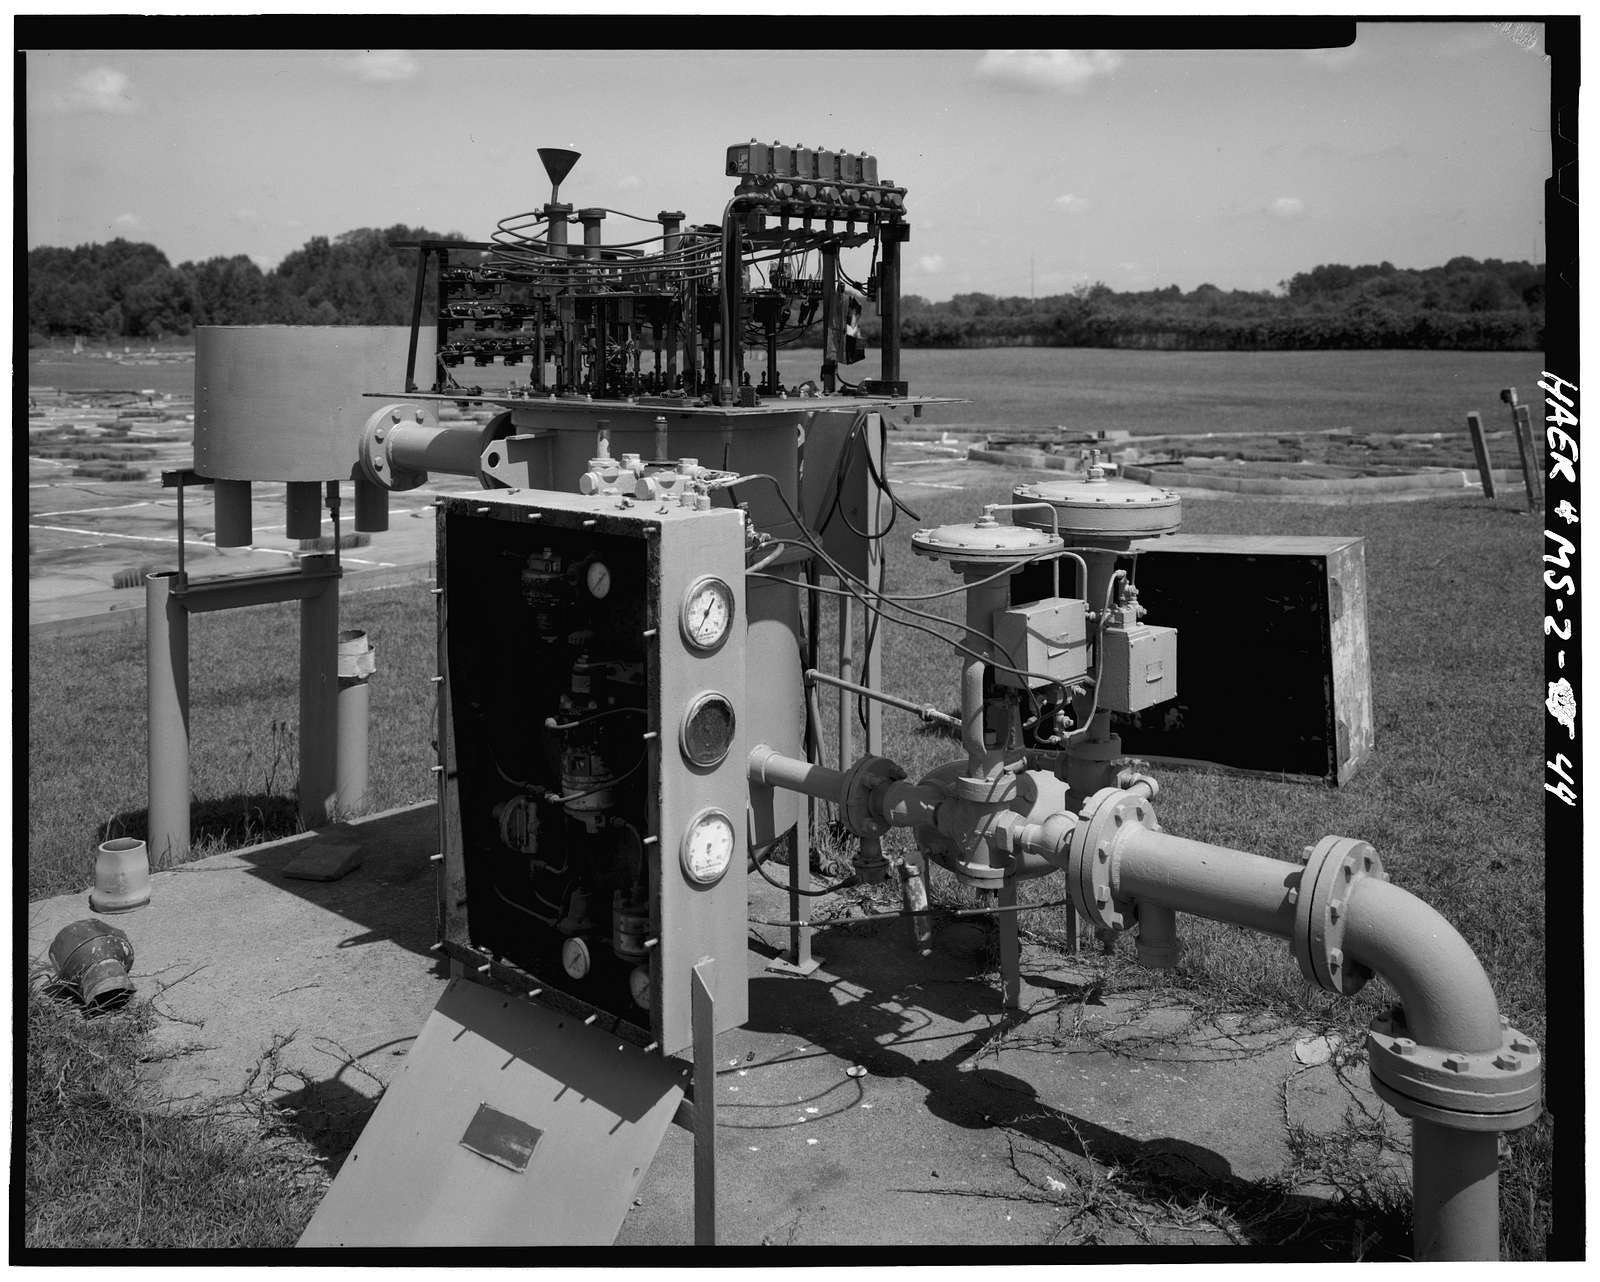 Waterways Experiment Station, Hydraulics Laboratory, Halls Ferry Road, 2 miles south of I-20, Vicksburg, Warren County, MS